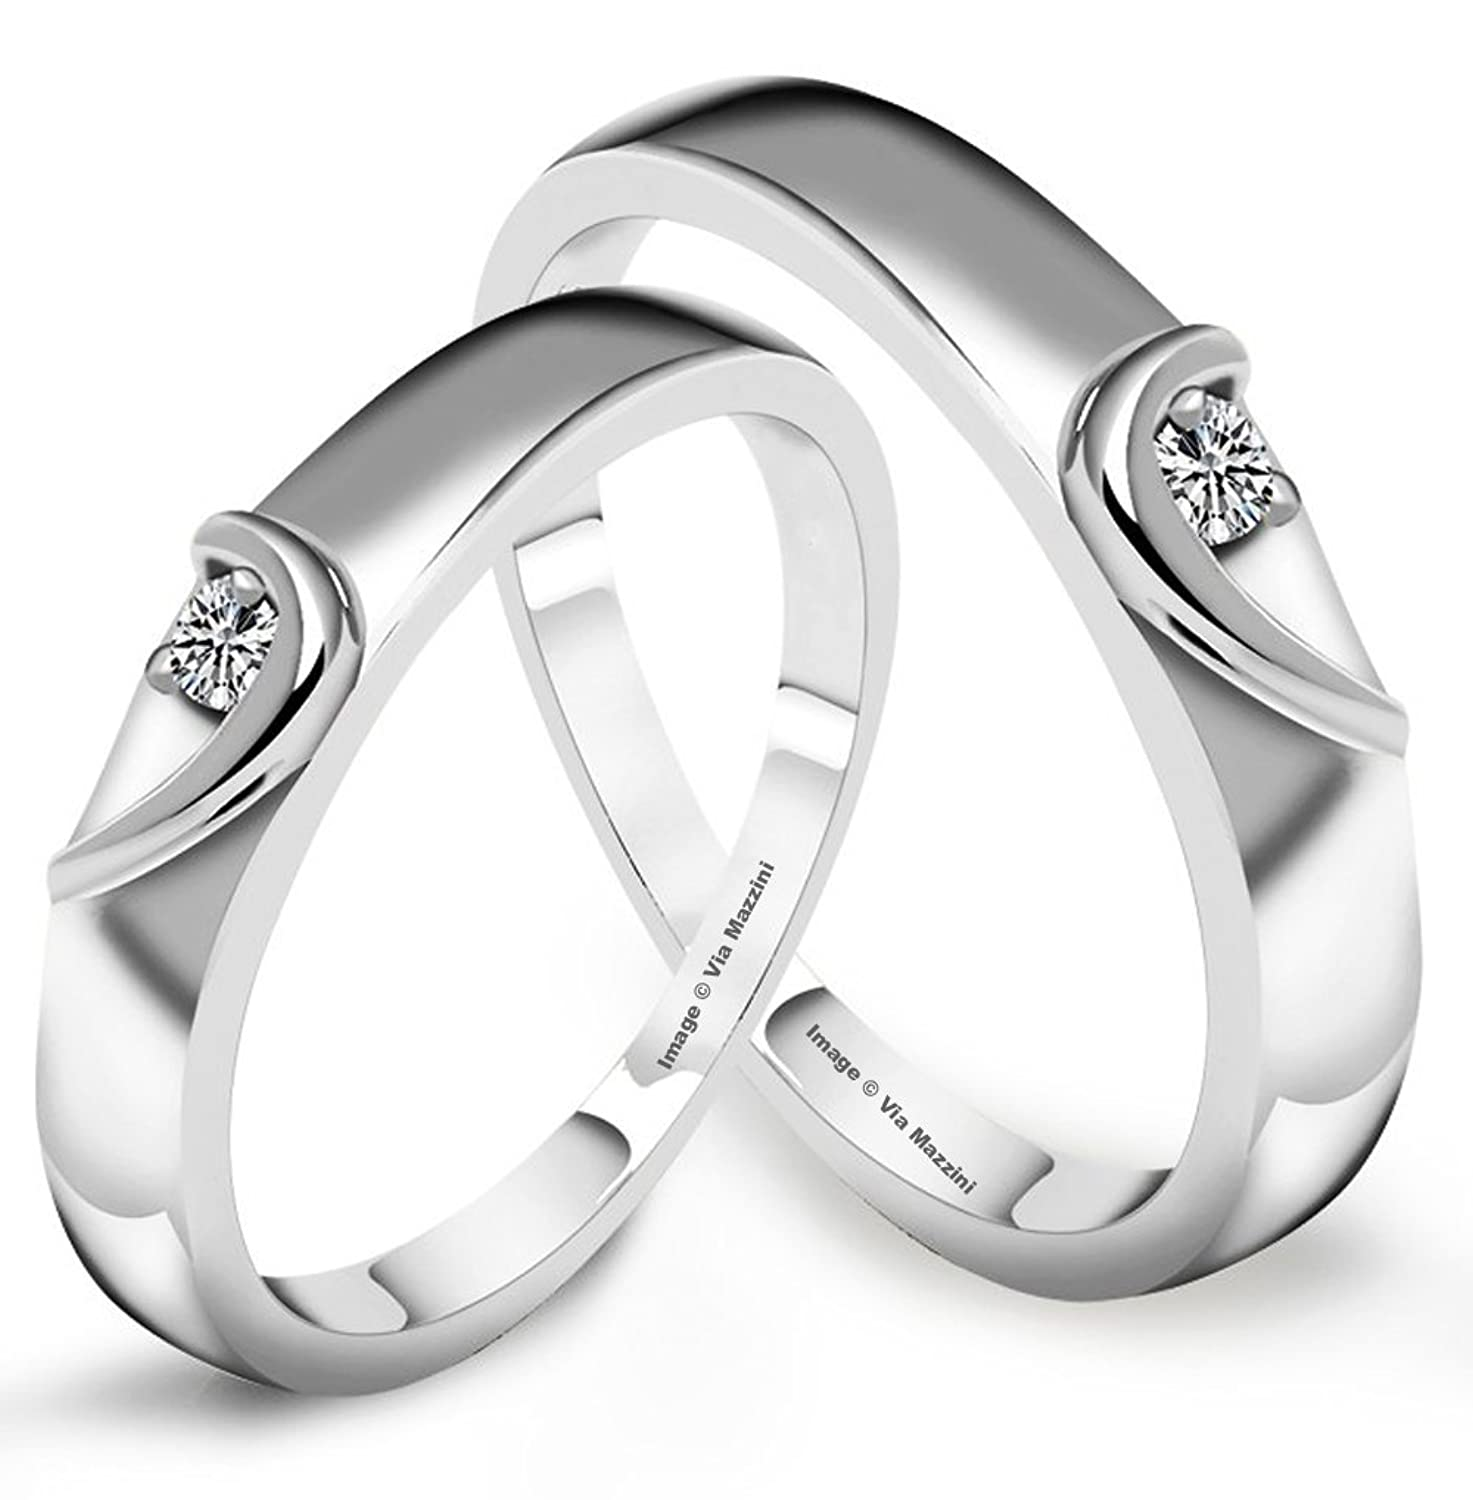 jewelry stainless wholesale steel rings jc fashion couple wedding engagement